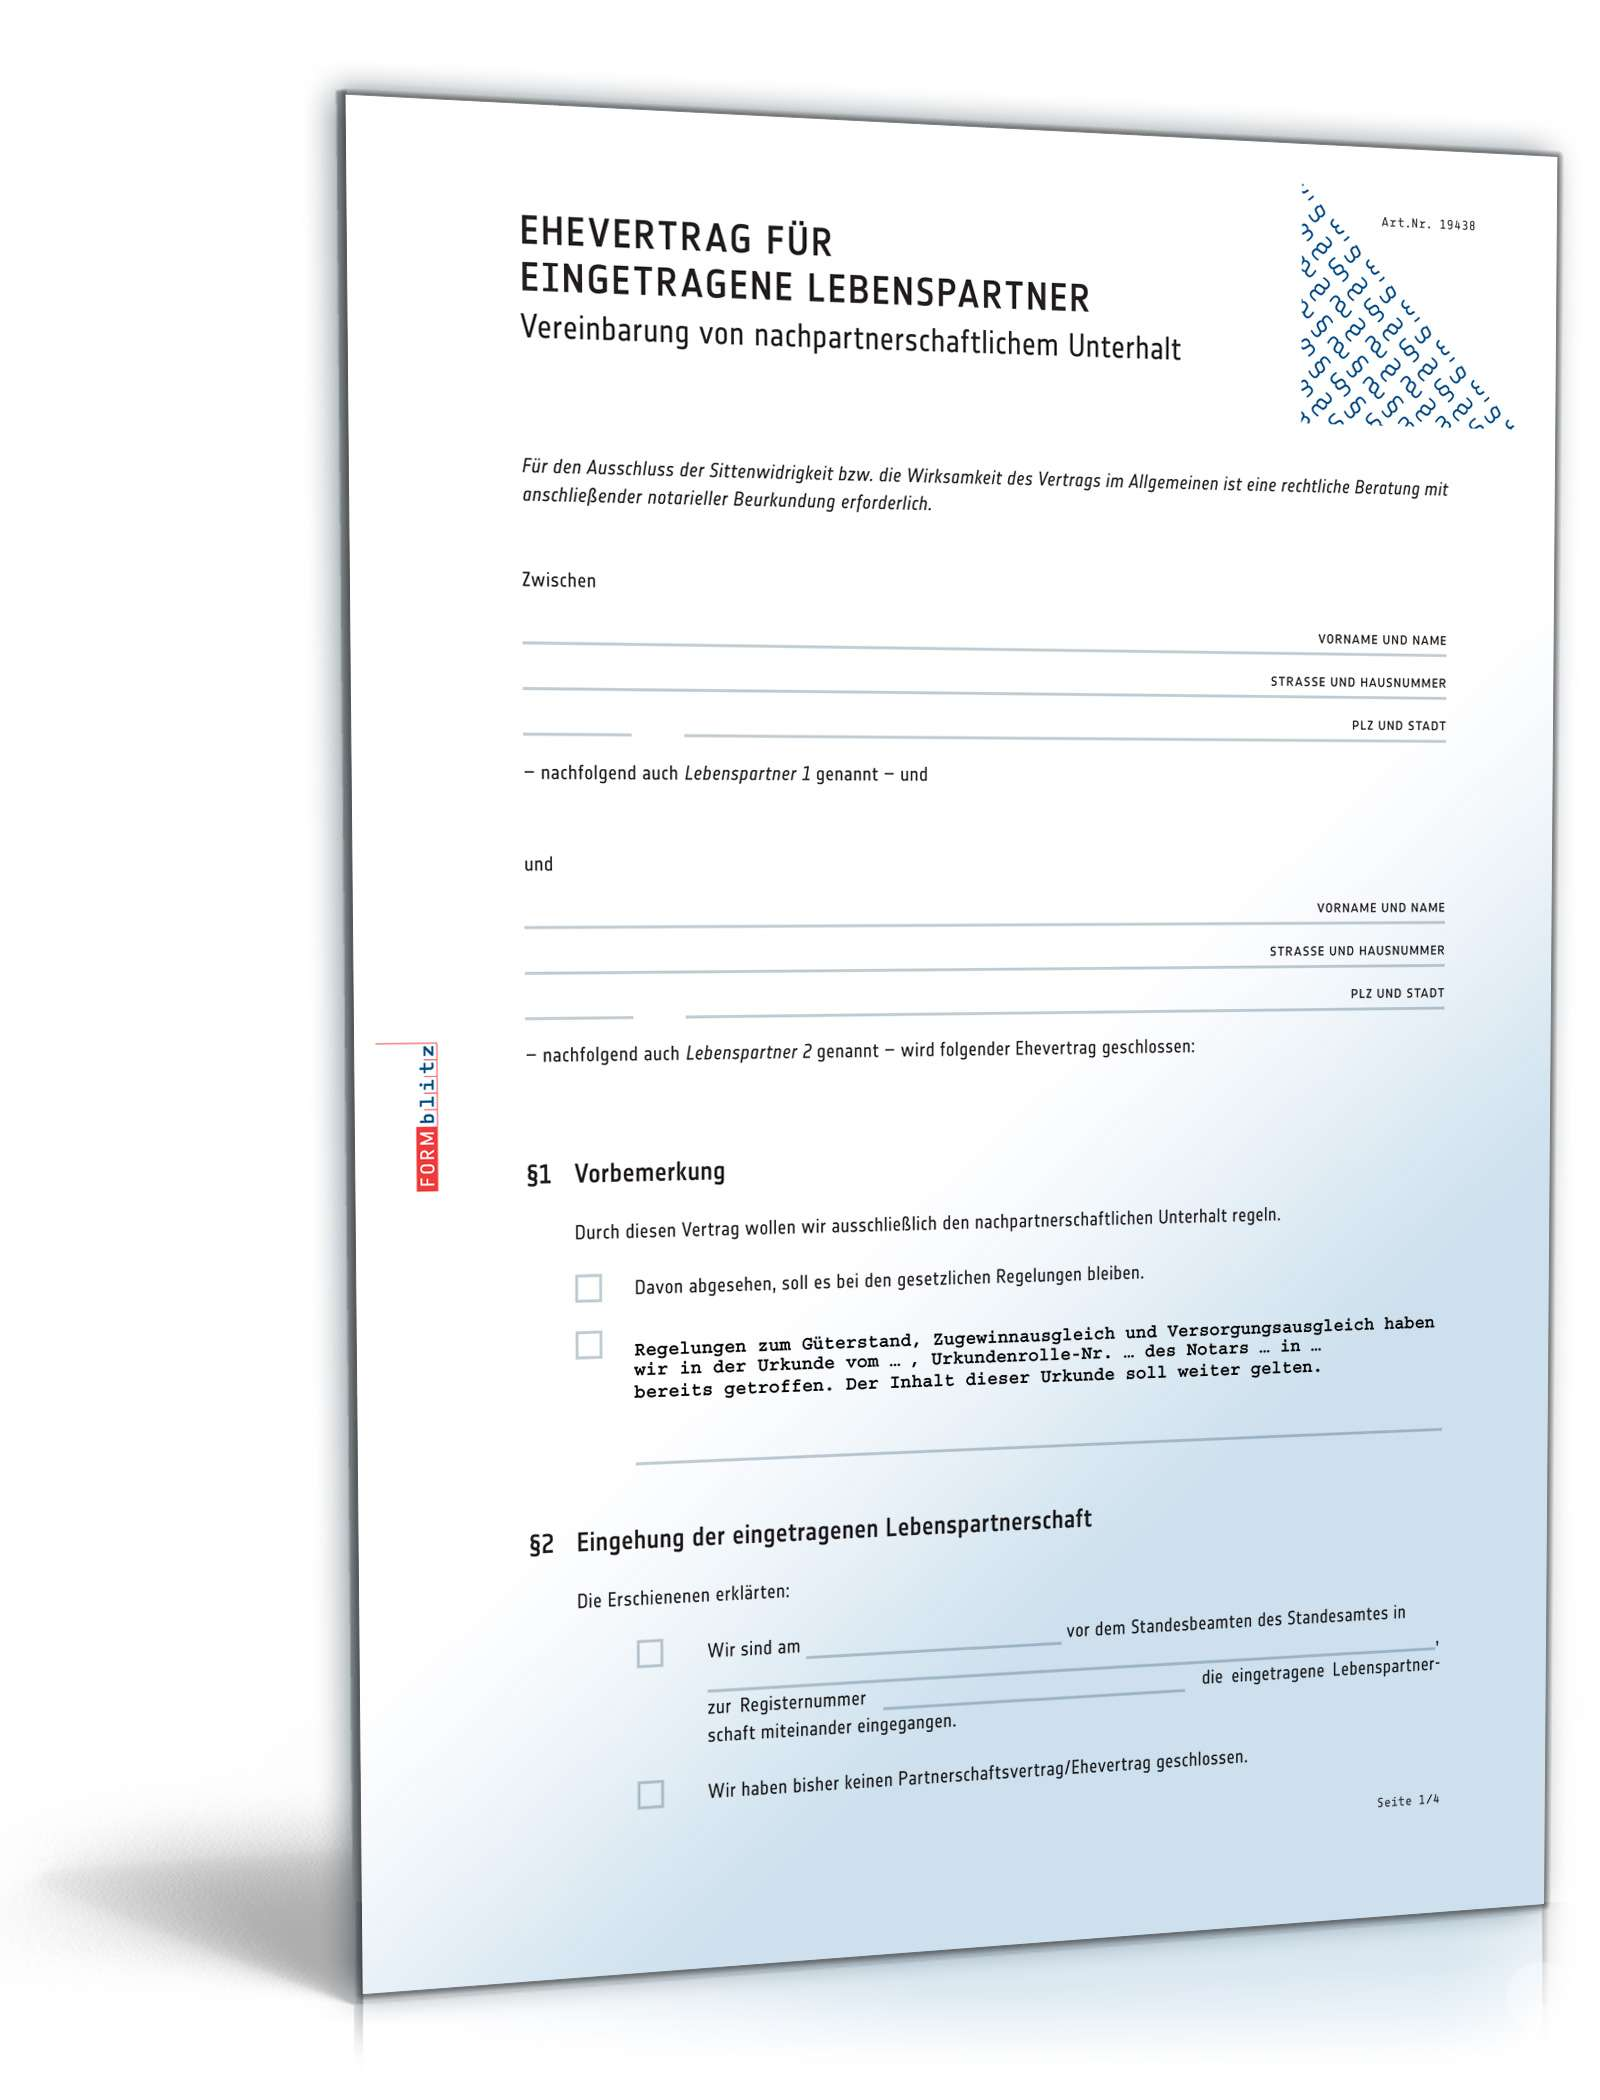 Ehevertrag Eingetragene Lebenspartner Muster Zum Download